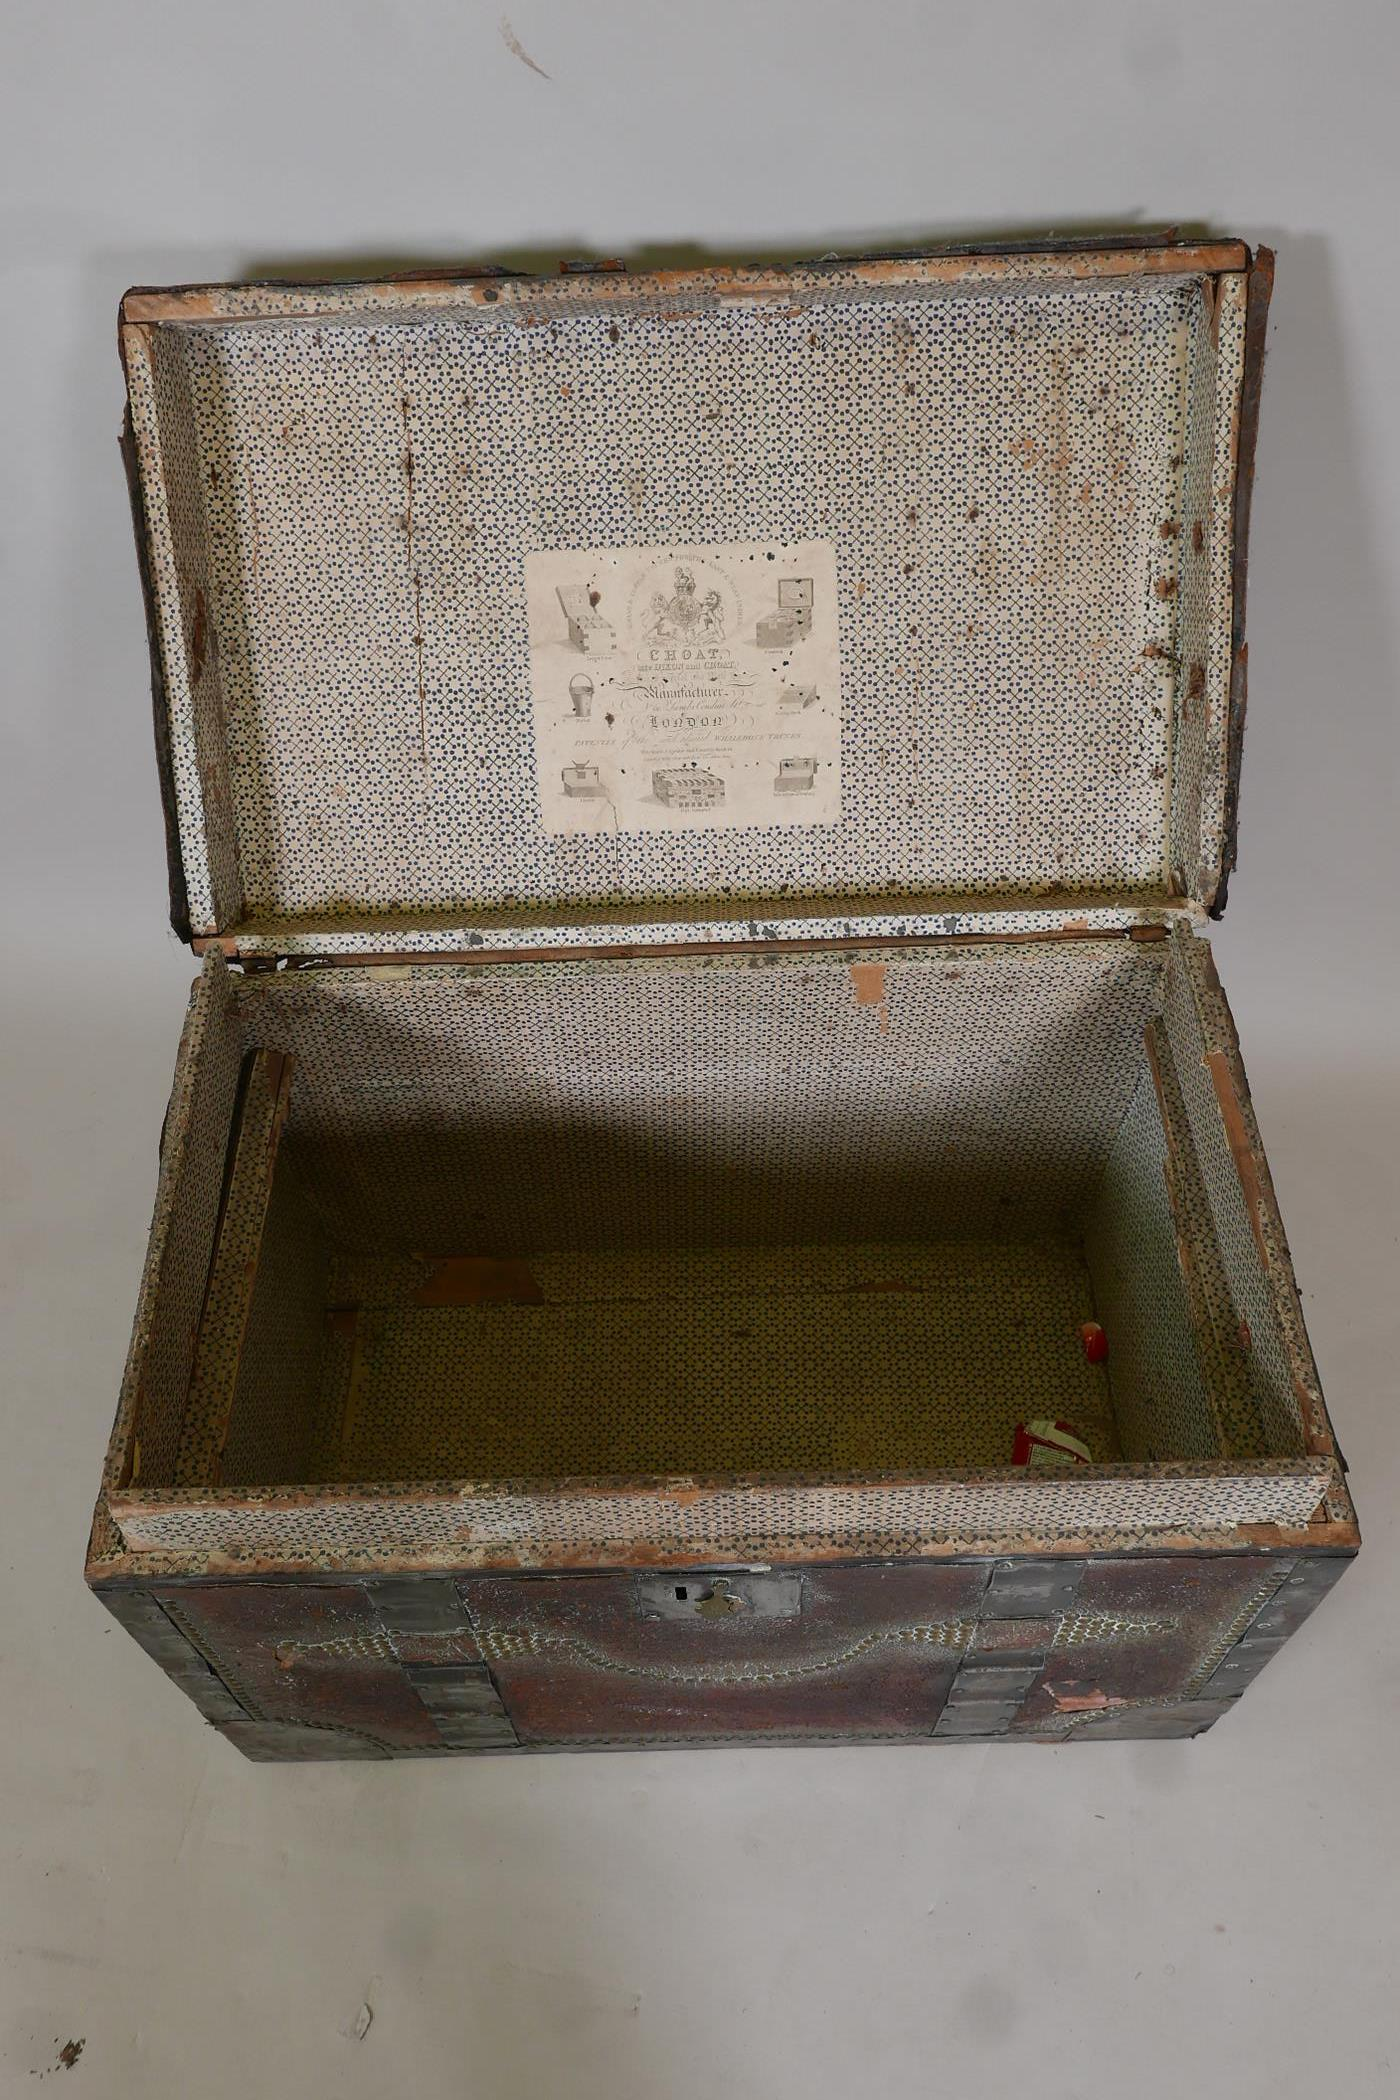 An early C19th painted leather trunk with brass stud decoration and steel straps, original papered - Image 5 of 5